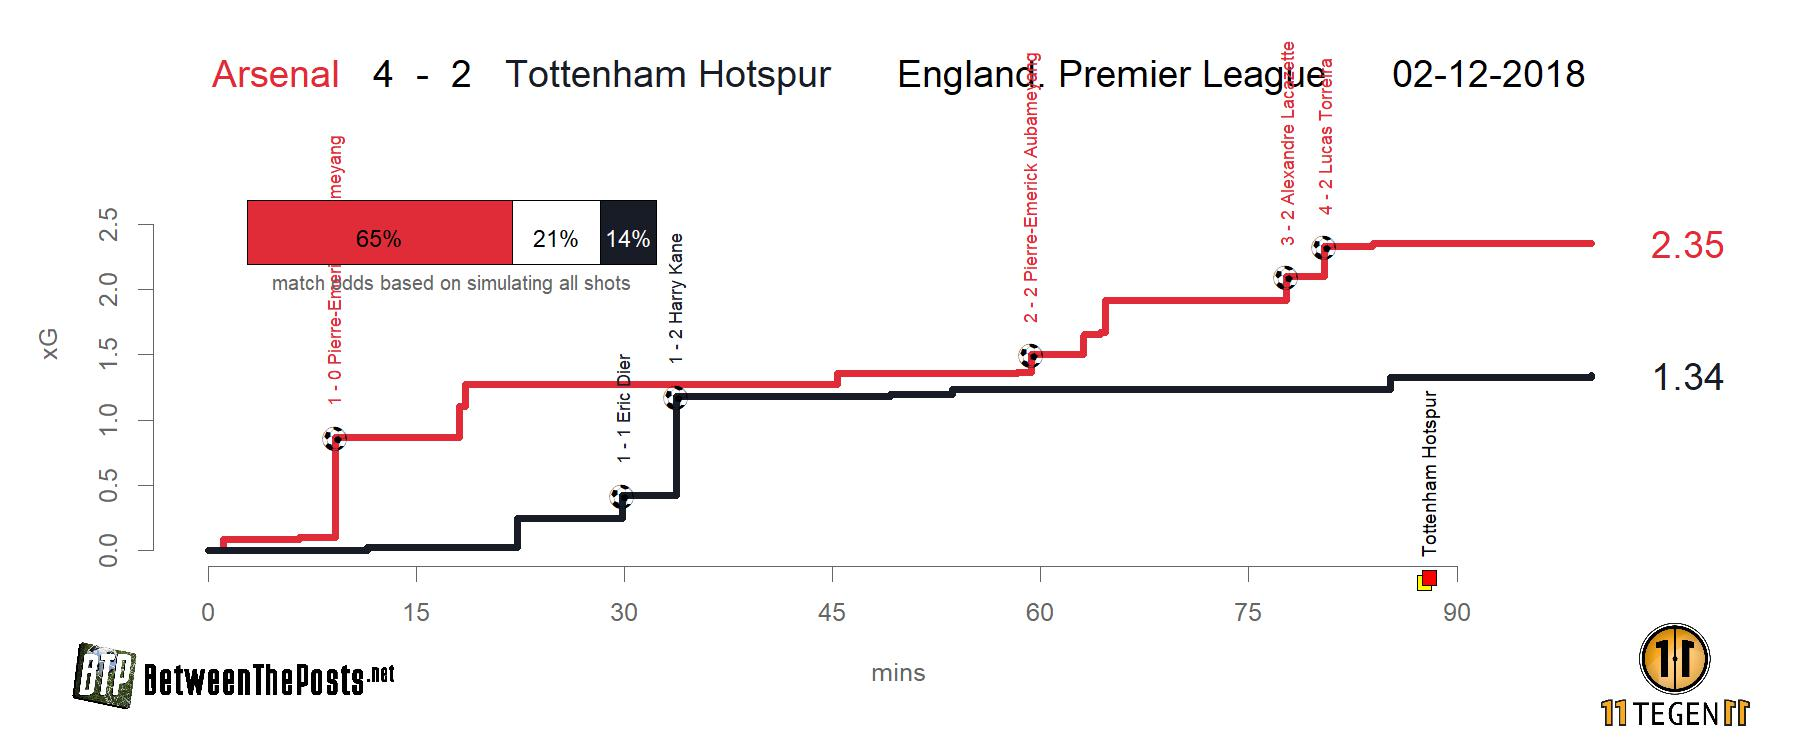 Expected goals plot Arsenal - Tottenham Hotspur 4-2